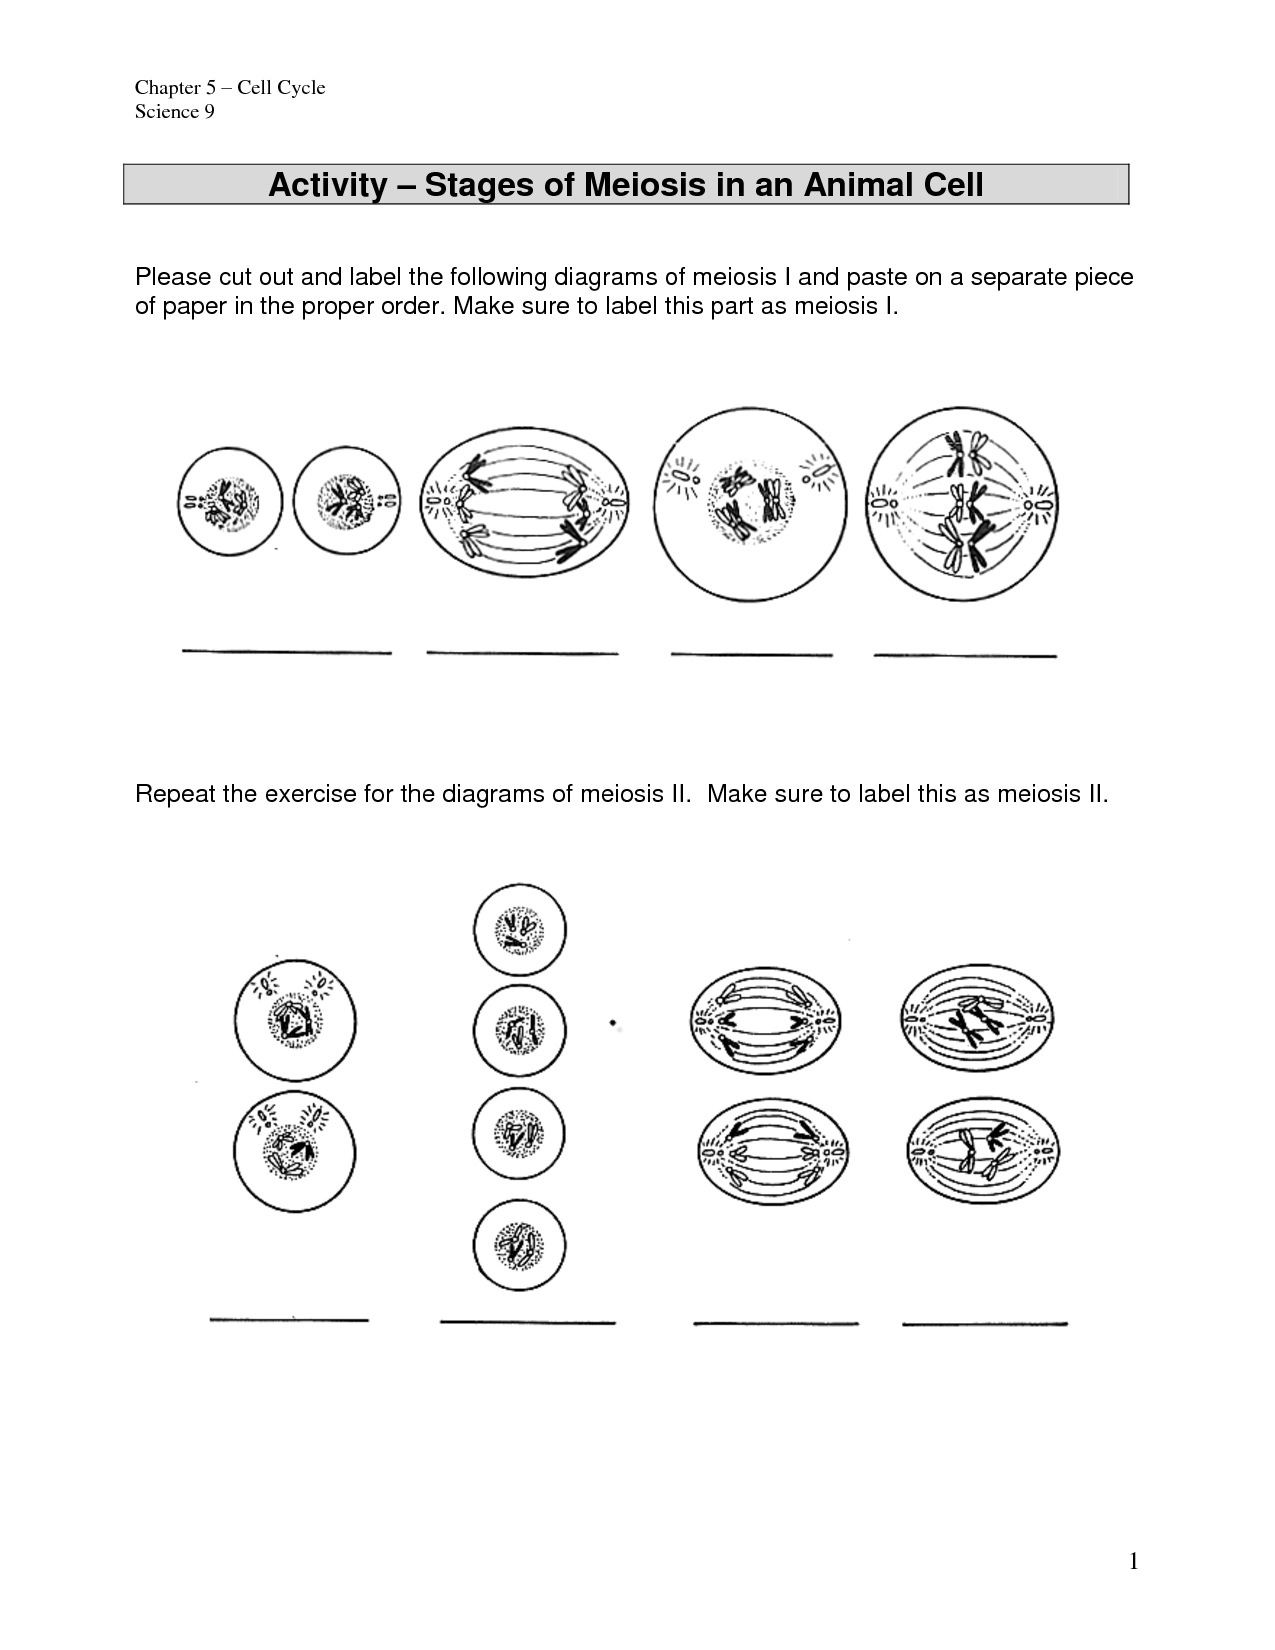 35 Mitosis Sequencing Worksheet 39 Answers